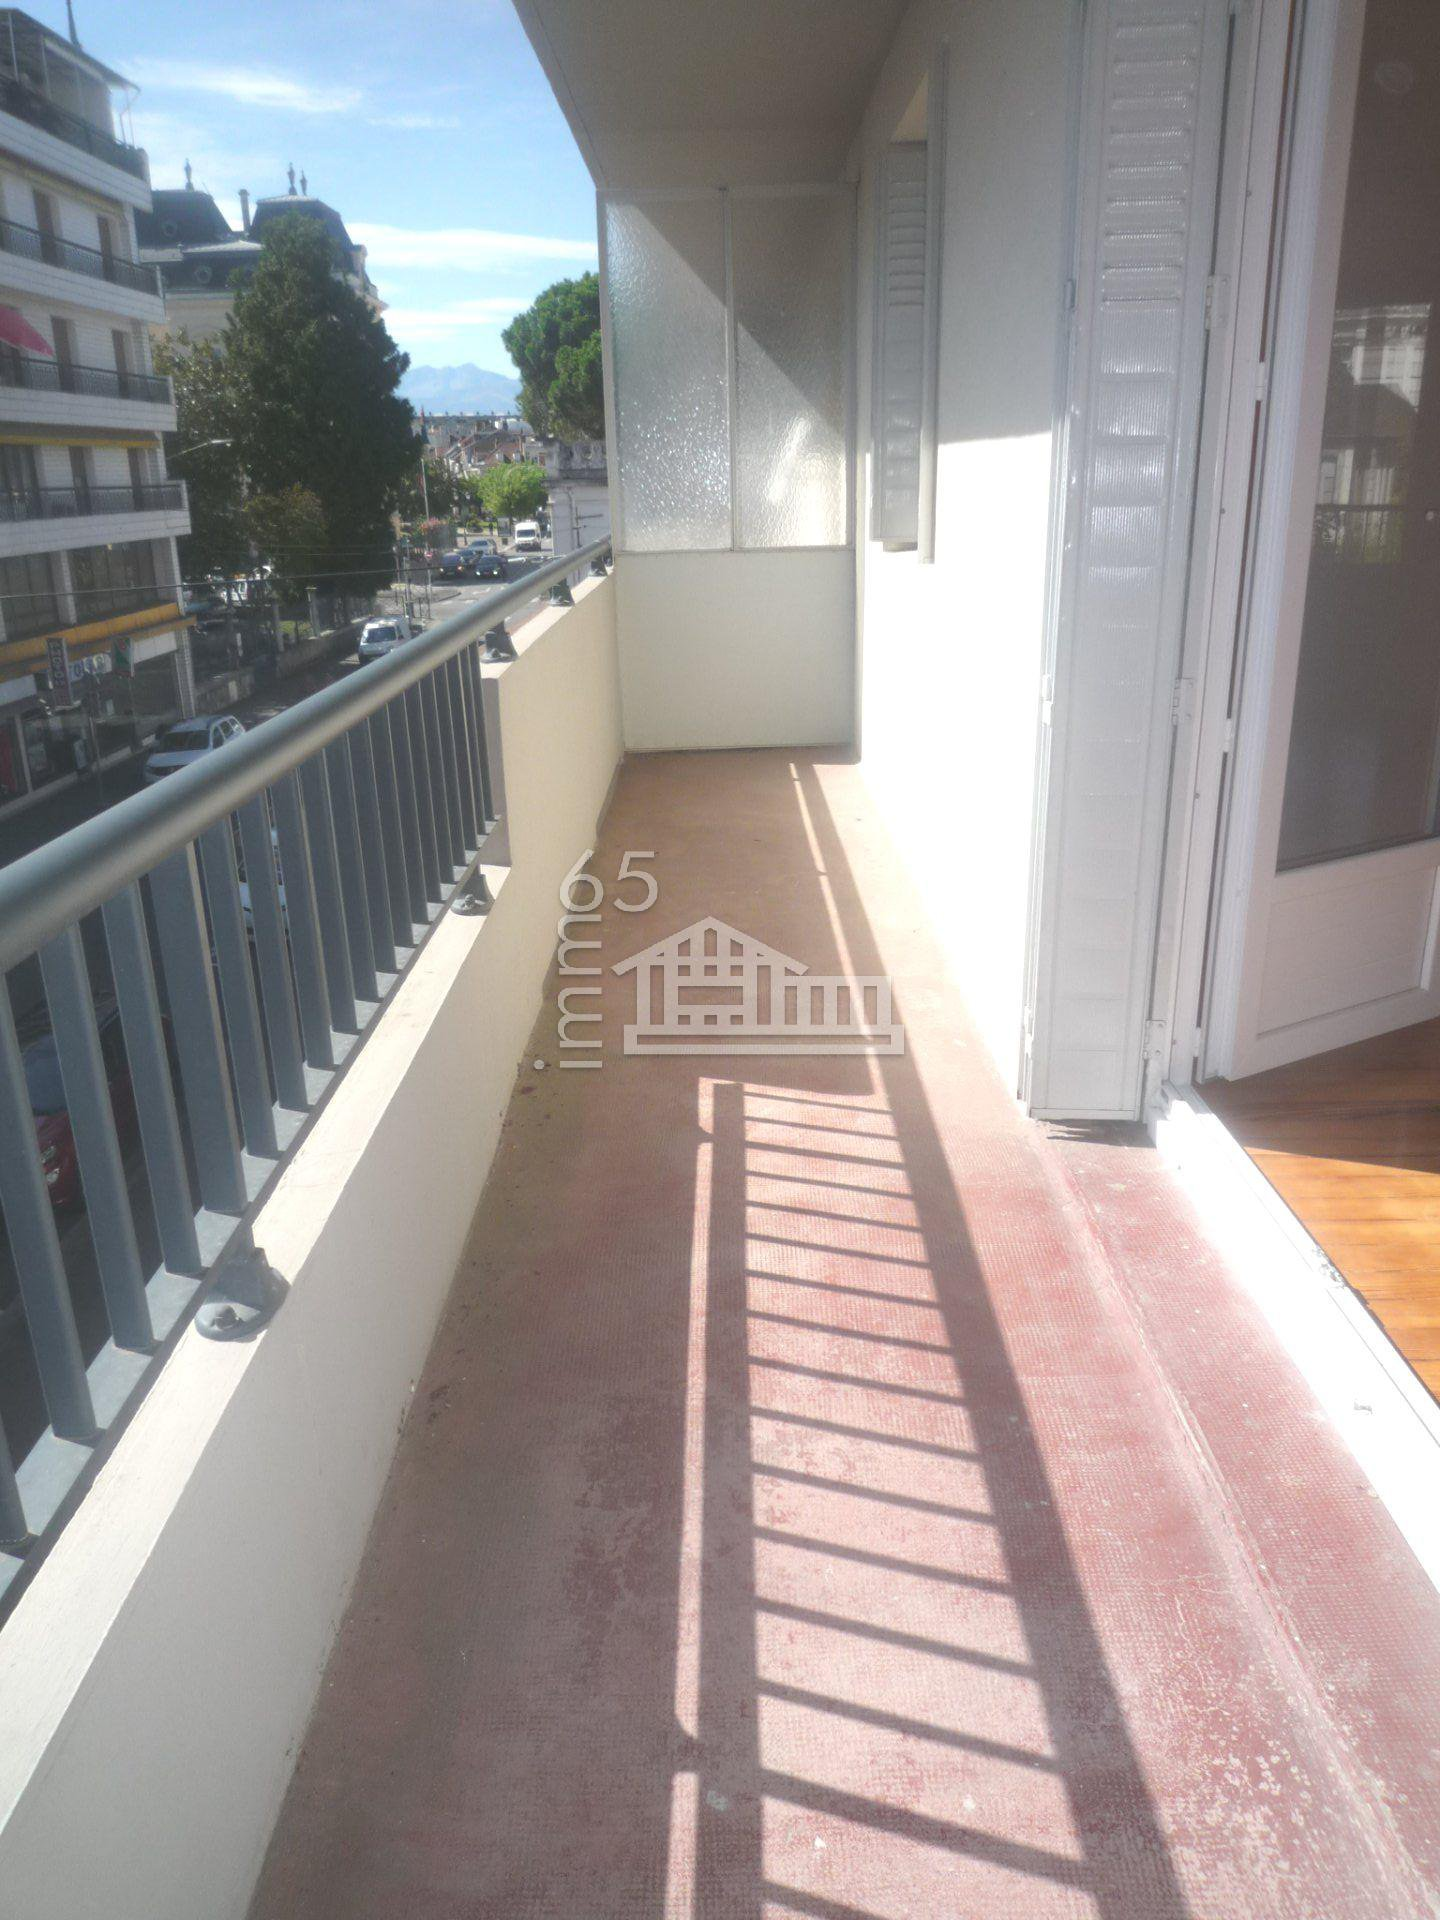 APPARTEMENT DE TYPE 3 HYPERCENTRE AVEC BALCON ET PARKING